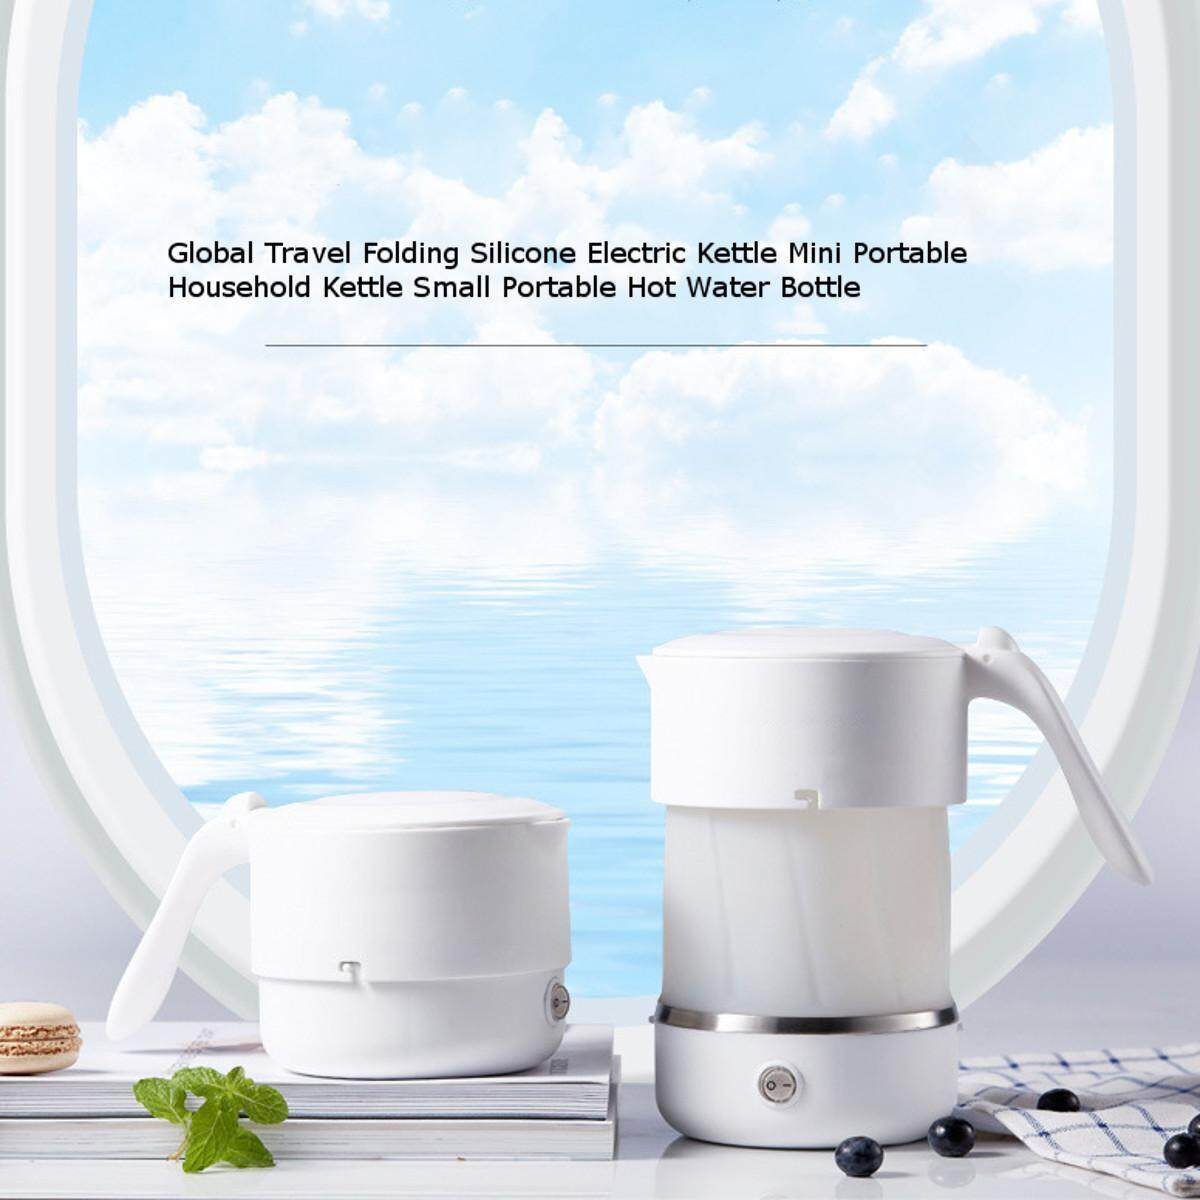 220V Global Travel Folding Silicone Electric Kettle Mini Portable Household Kettle Small Portable Hot Water Bottle